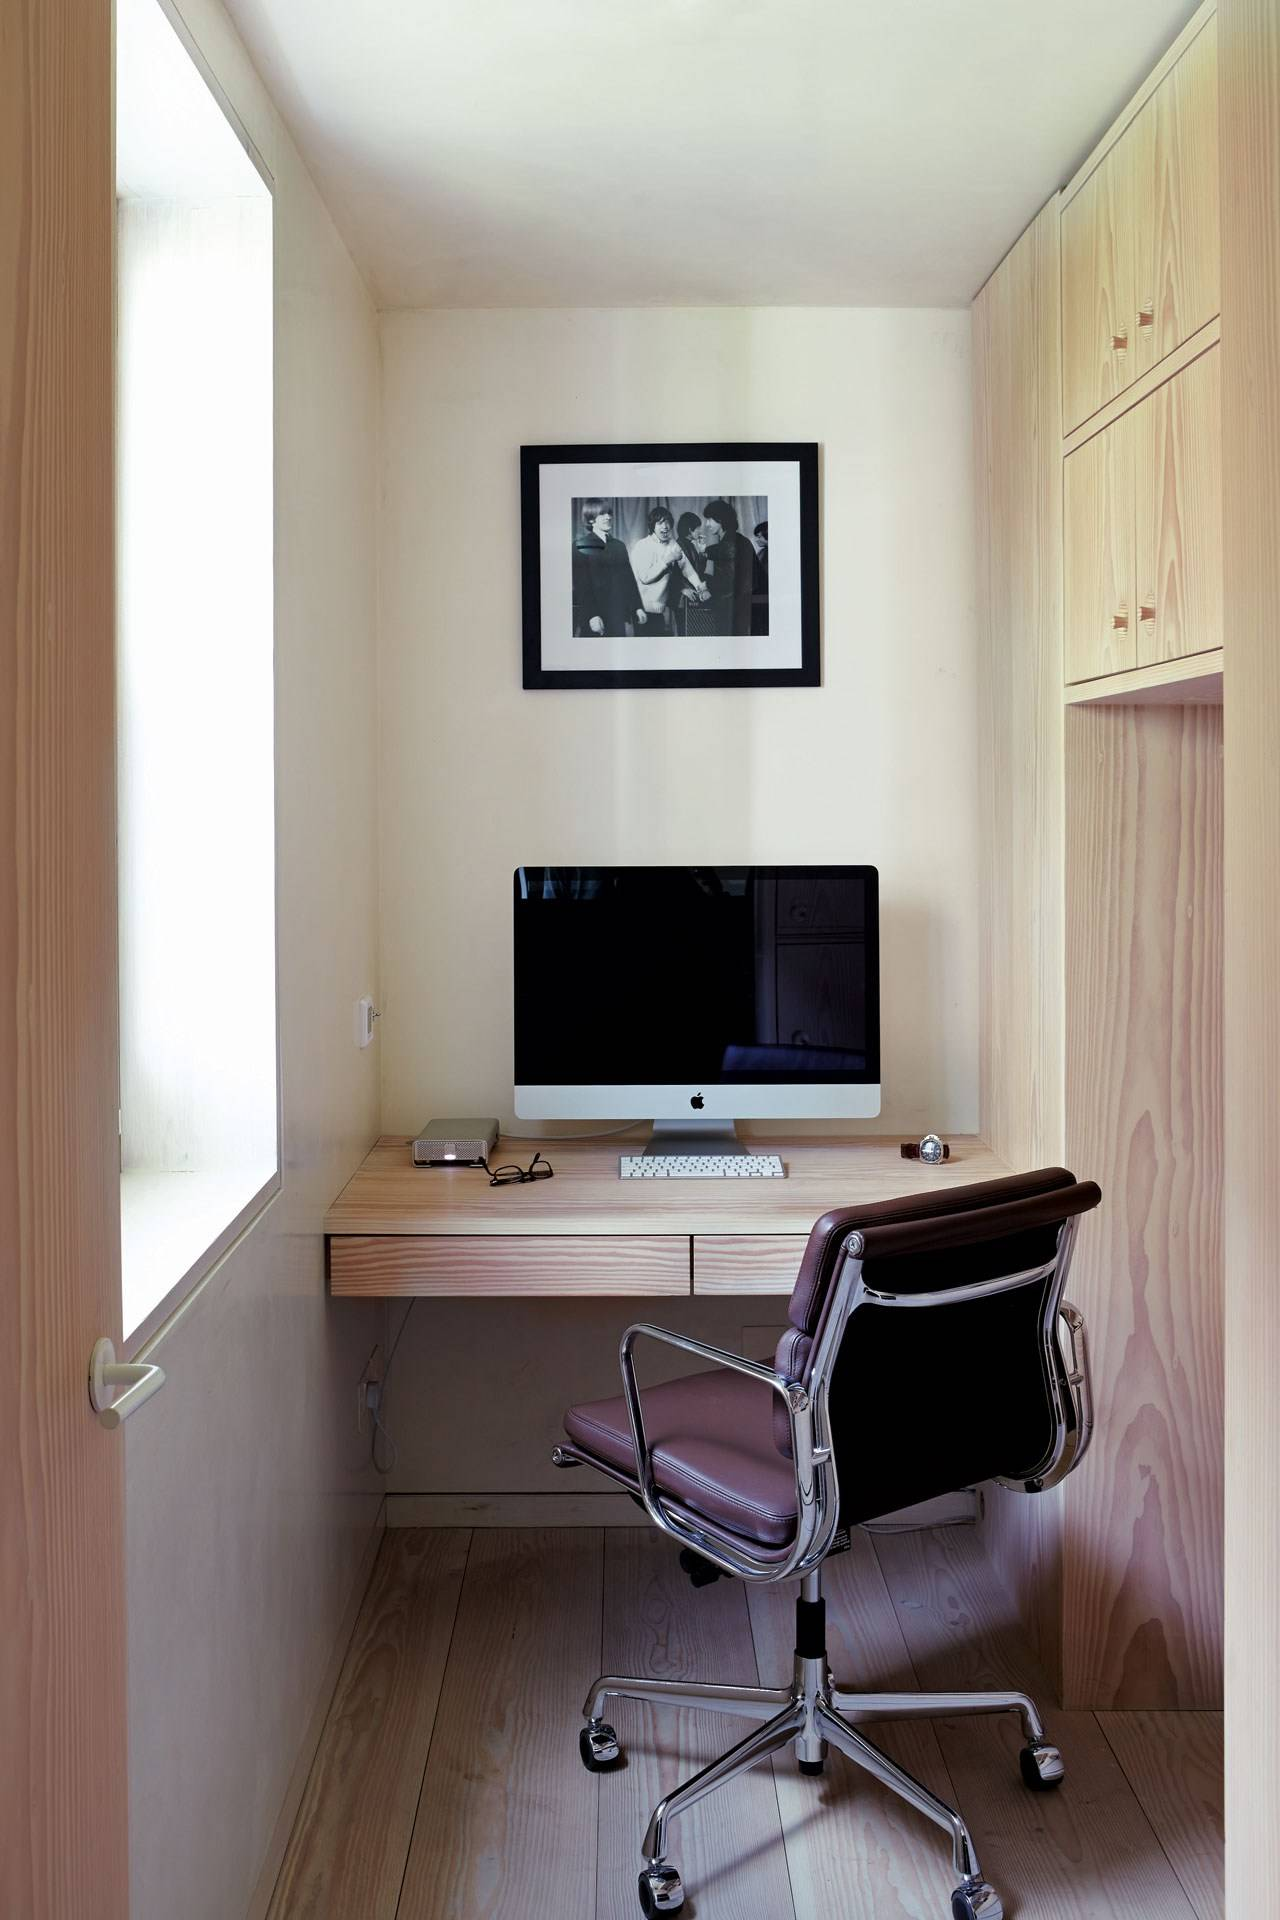 Small Office Small Spaces Design Ideas Pictures Decorating Ideas House Garden